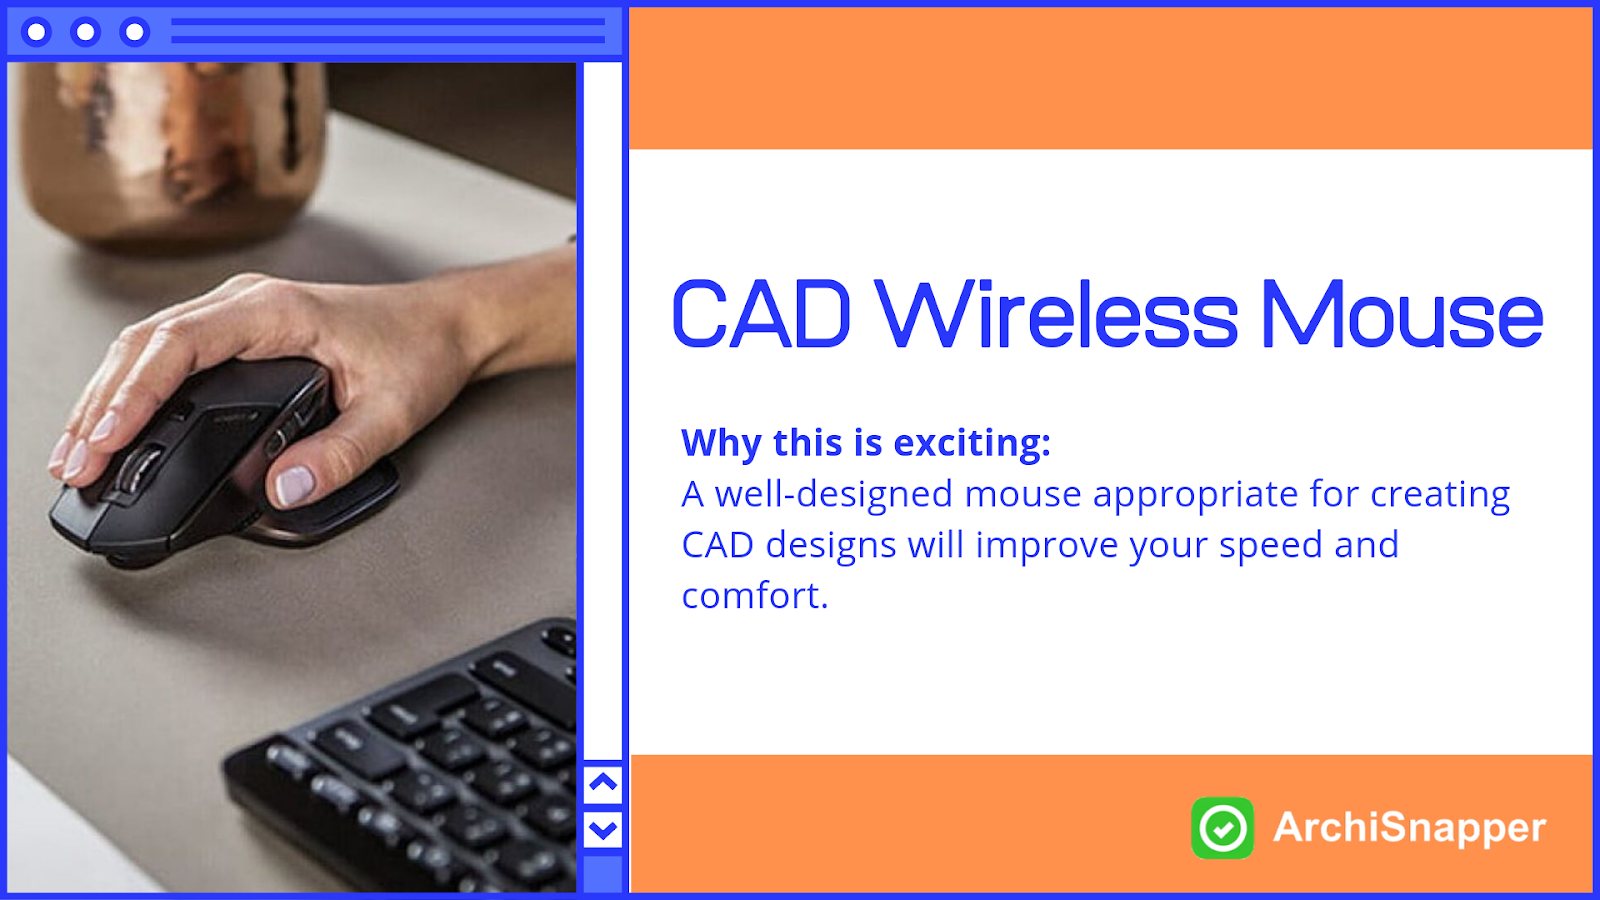 CAD Wireless mouse | List of the 15 must-have tech tools and accessories ideal for architects presented by Archisnapper.